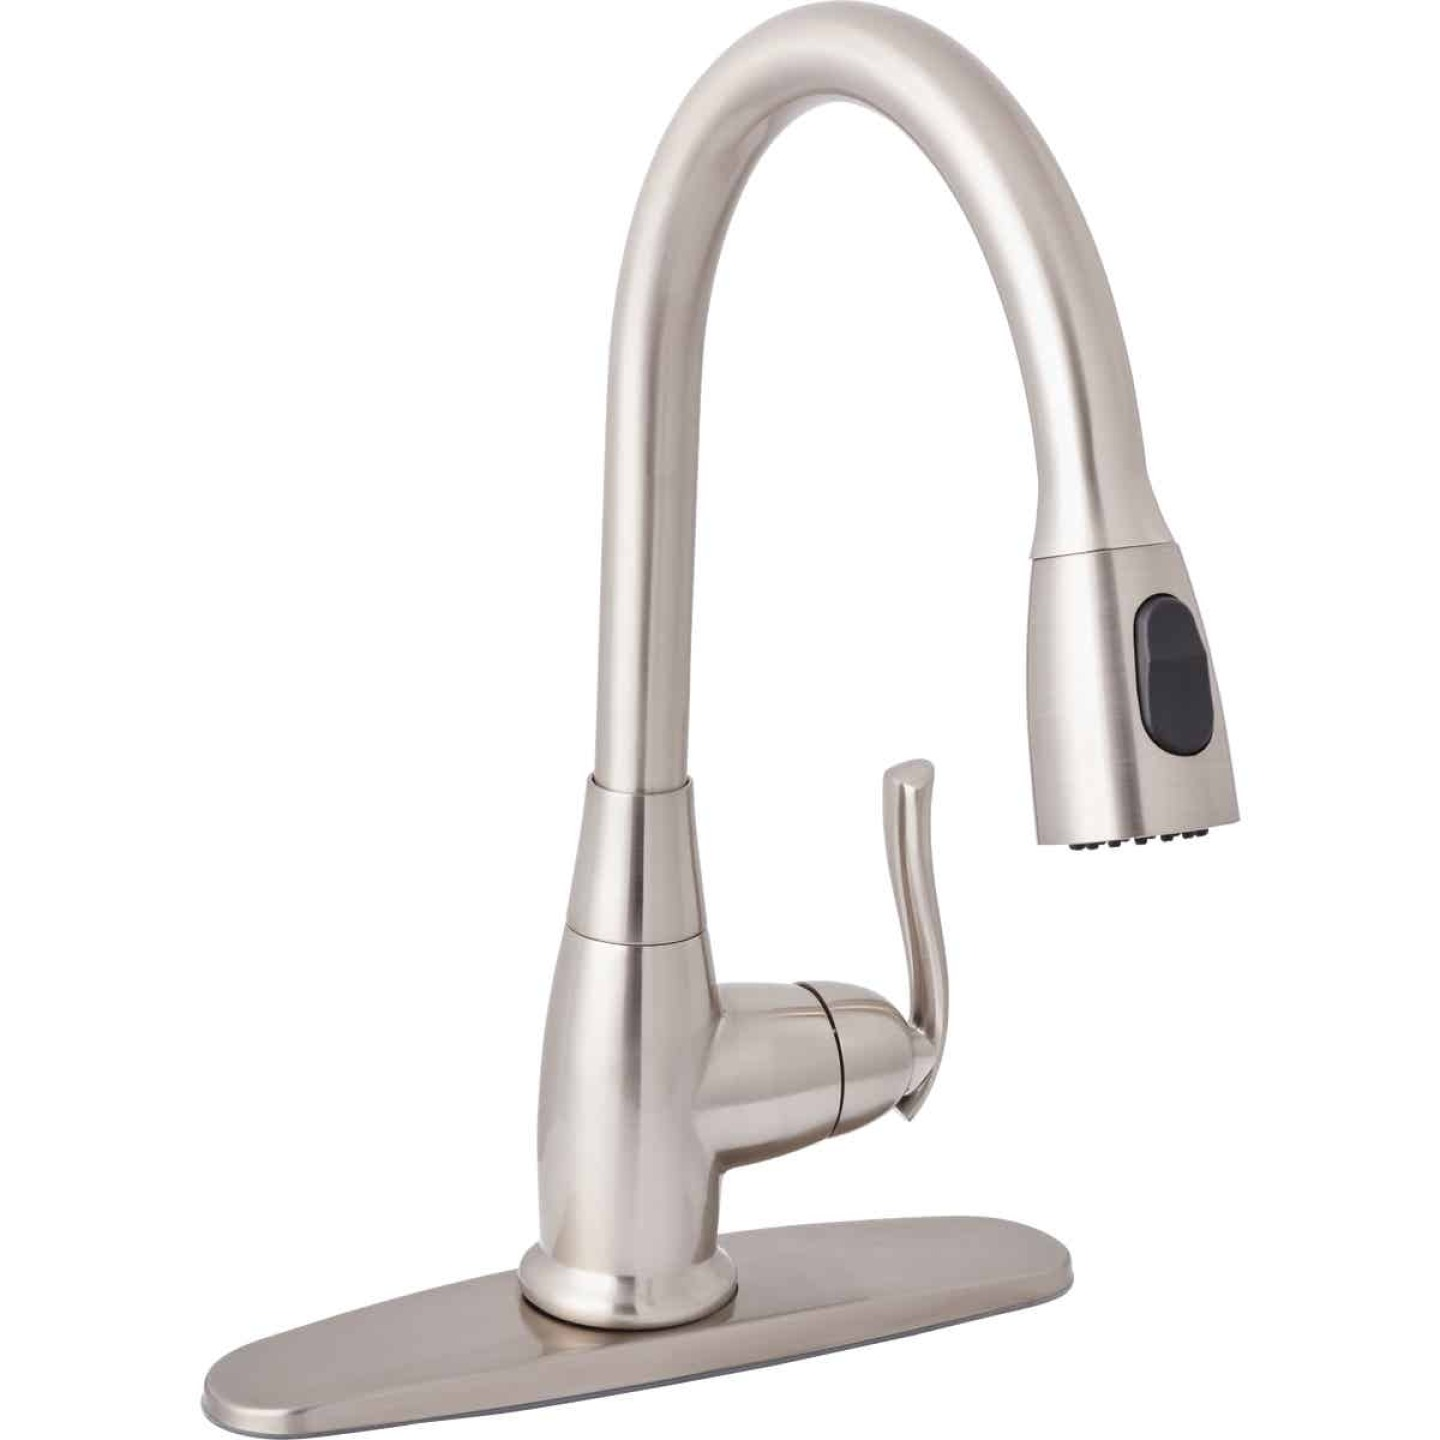 Home Impressions Single Handle Lever Pull-Down Kitchen Faucet, Brushed Nickel Image 1